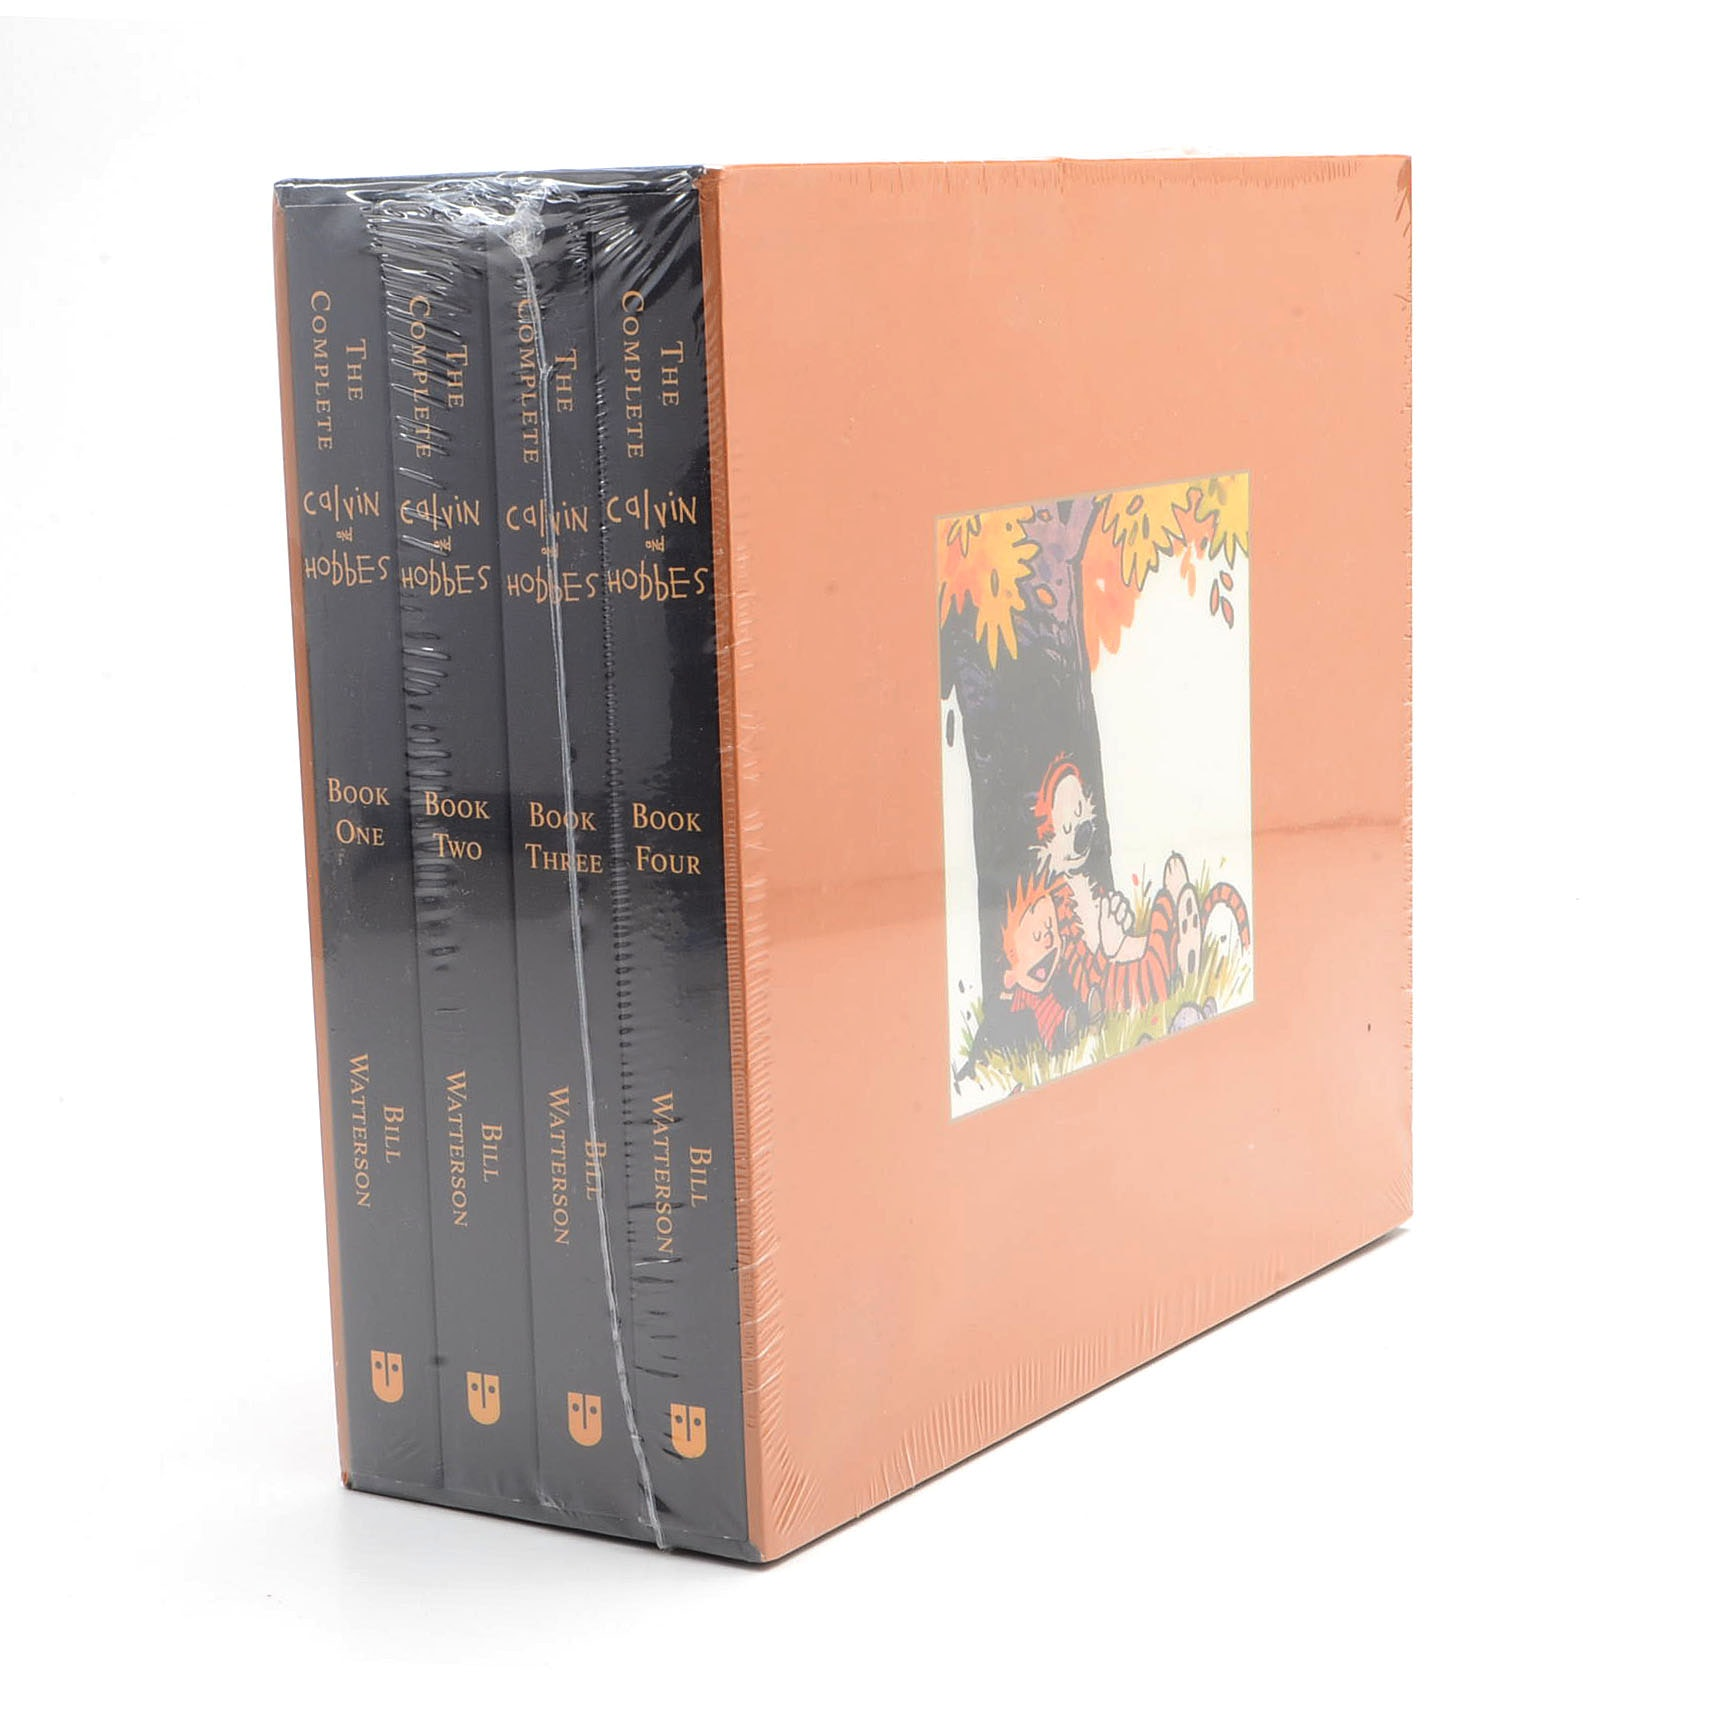 """The Complete Calvin and Hobbes"" Box Set"